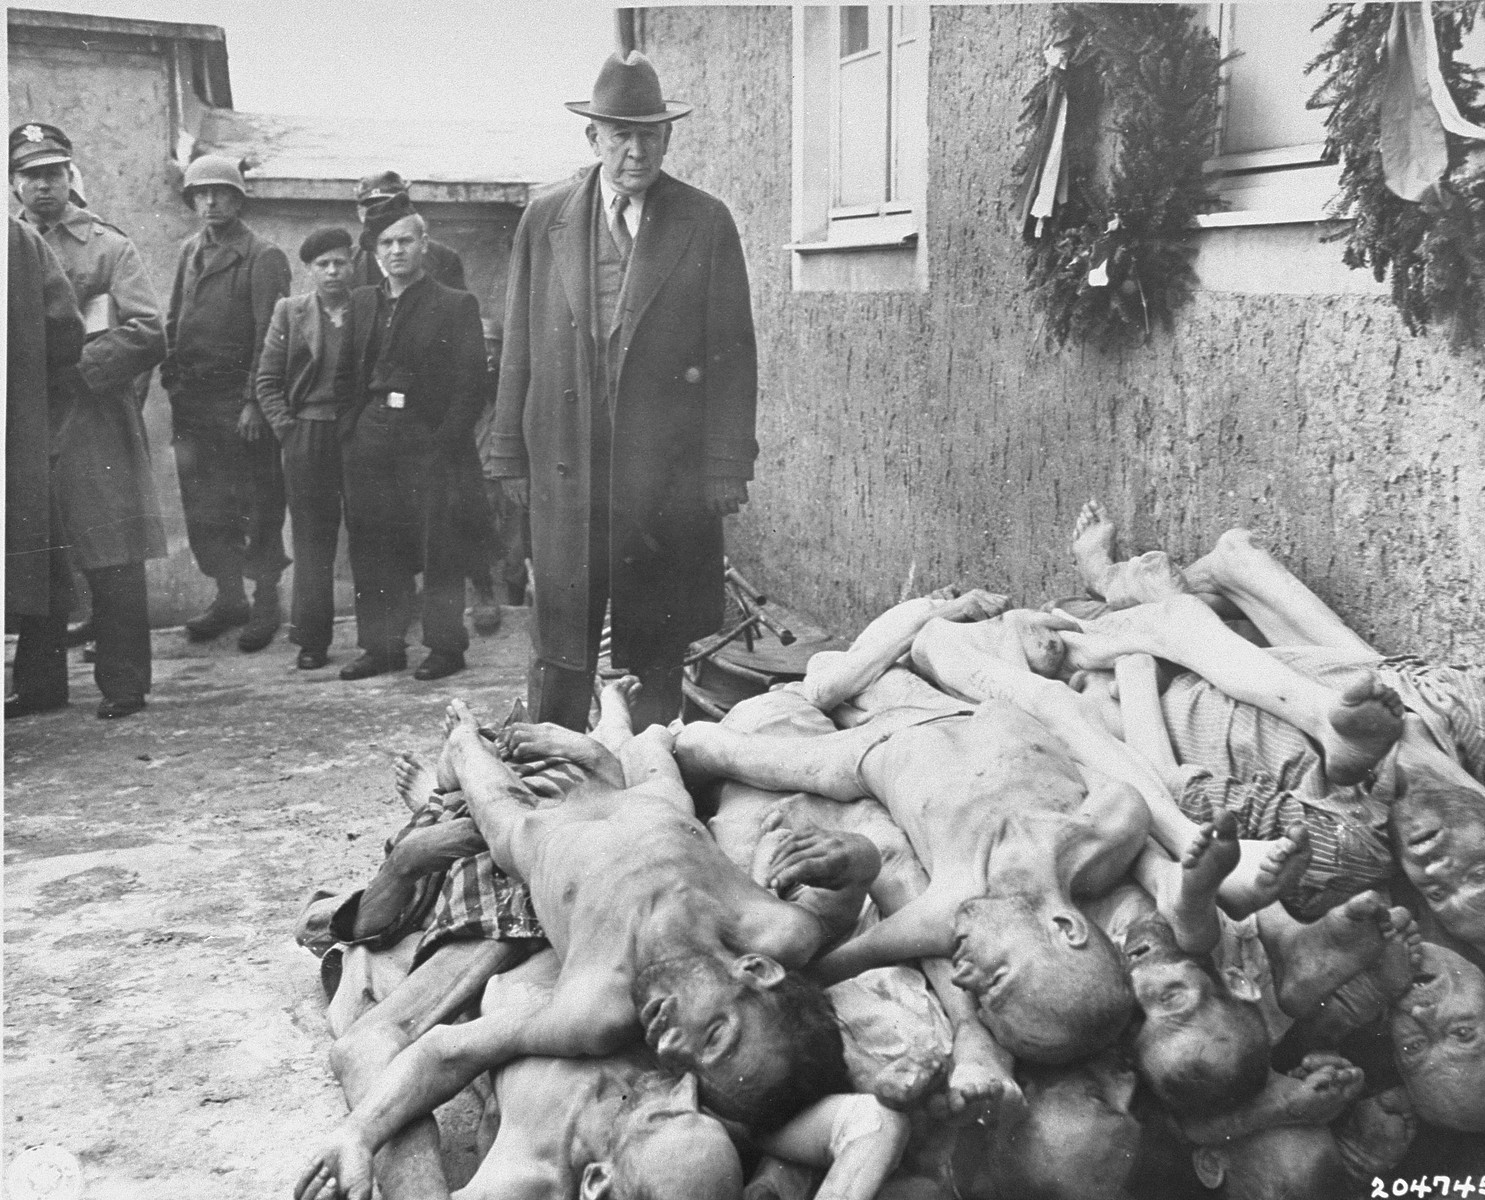 U.S. Senator Alben W. Barkley of Kentucky, a member of a congressional committee investigating Nazi atrocities, views evidence in Buchenwald.